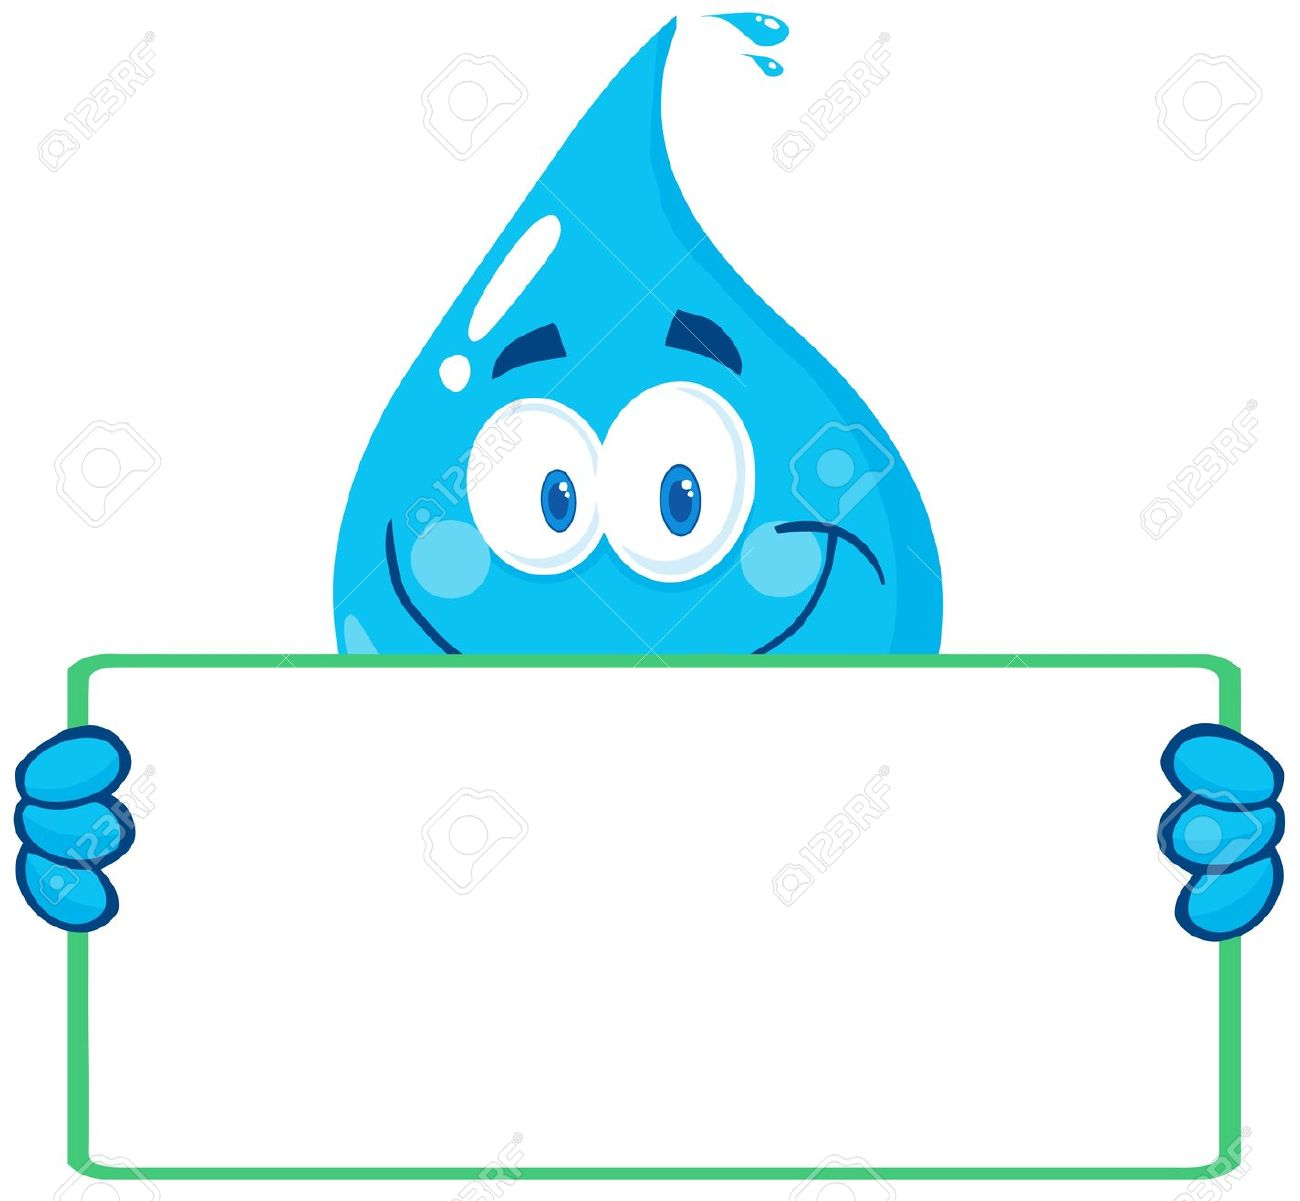 Waterdrop clipart character #6